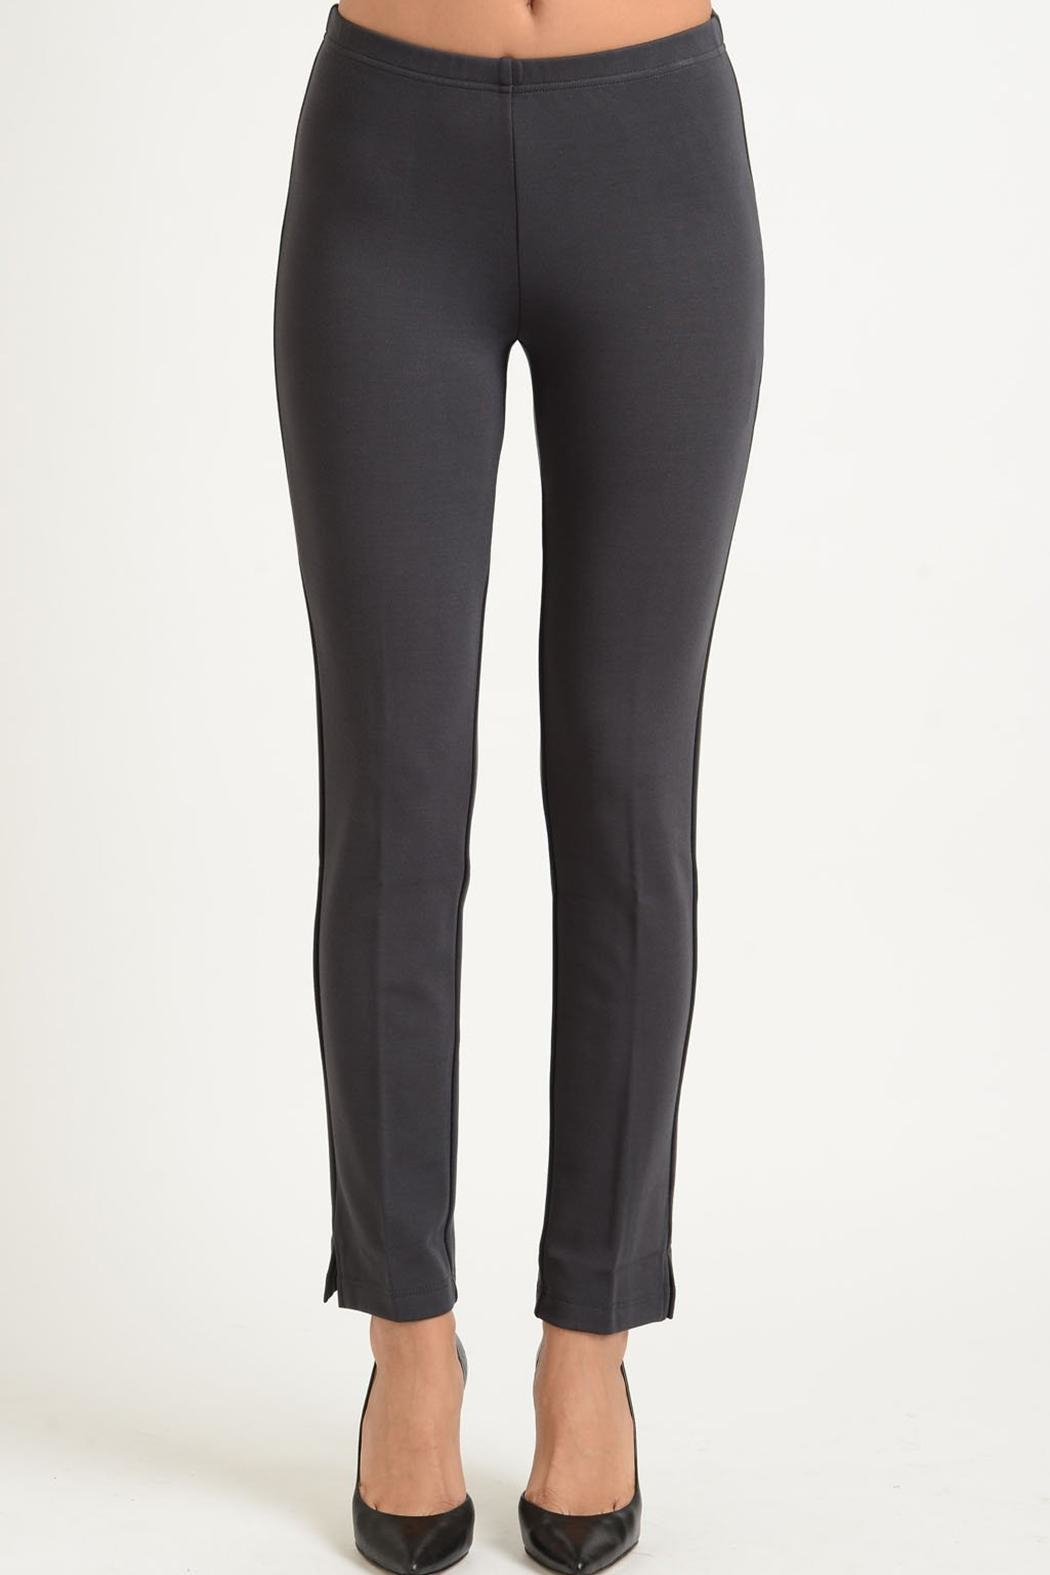 Lynn Ritchie Perfect Pant - Front Cropped Image